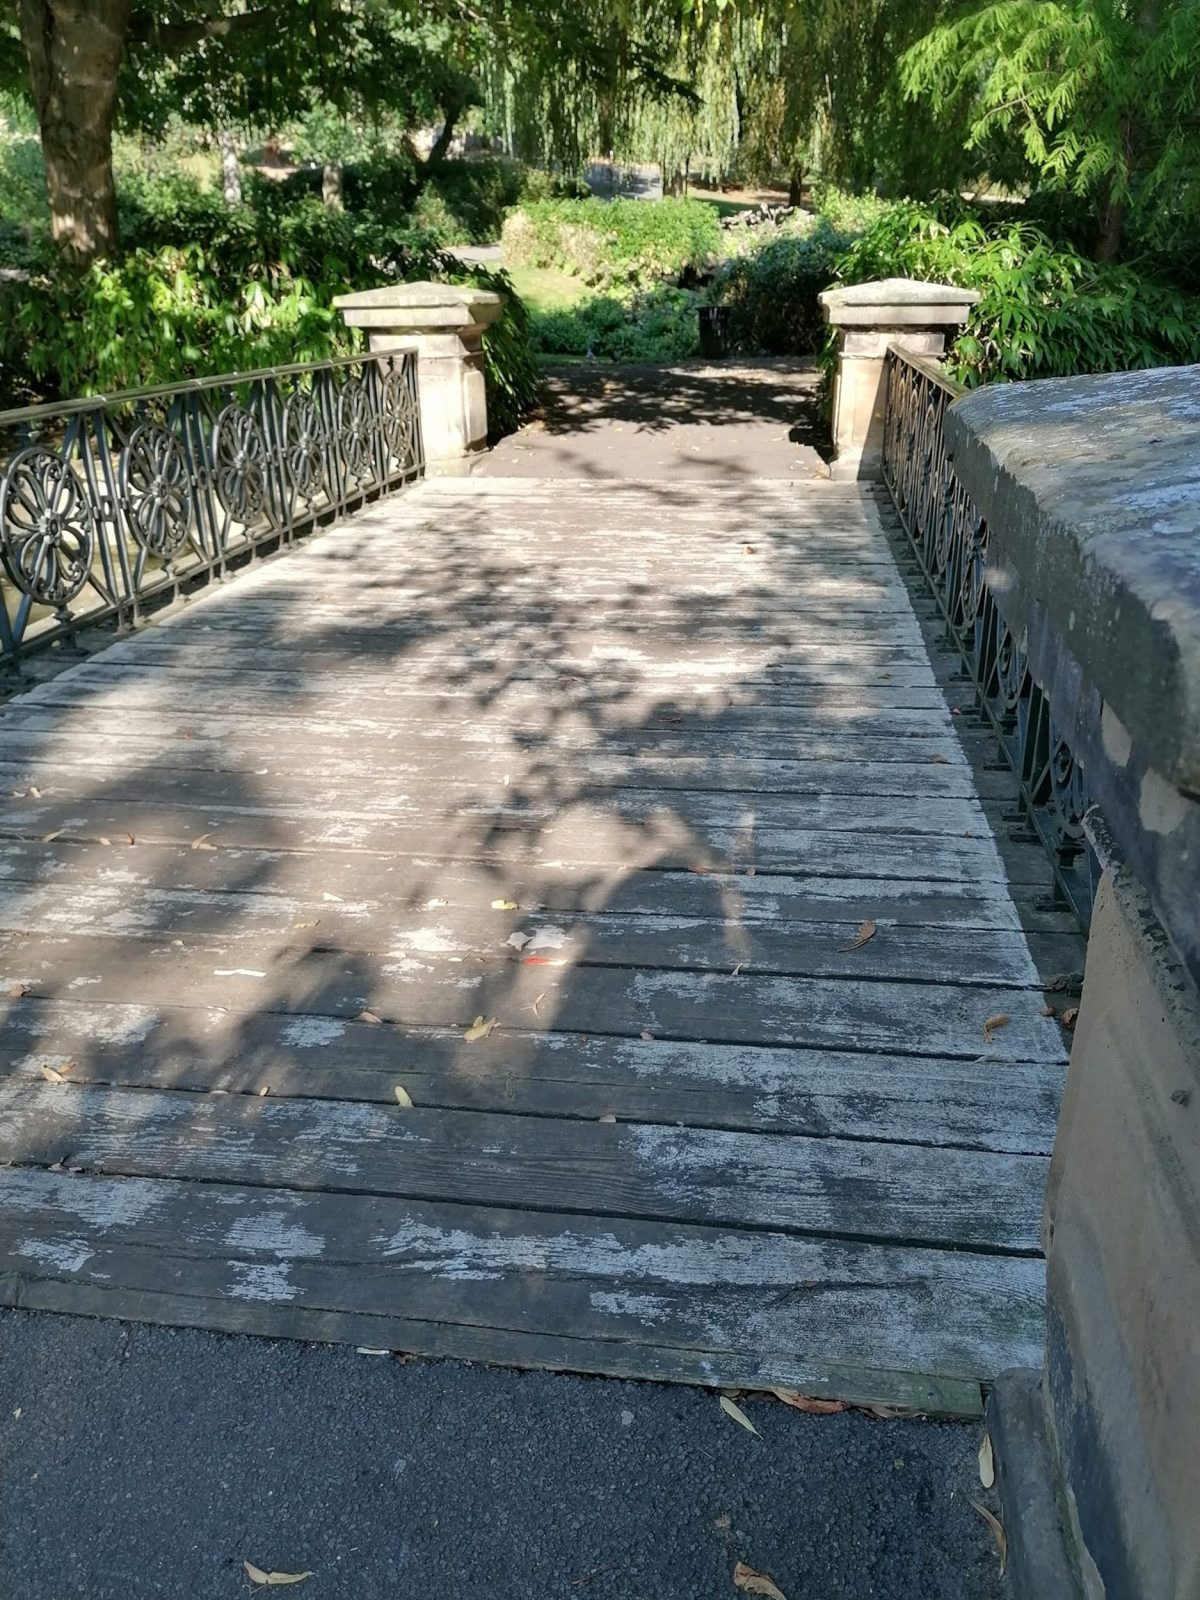 The bridge in Lincoln Arboretum where Grant Stevens proposed to Milly Reece